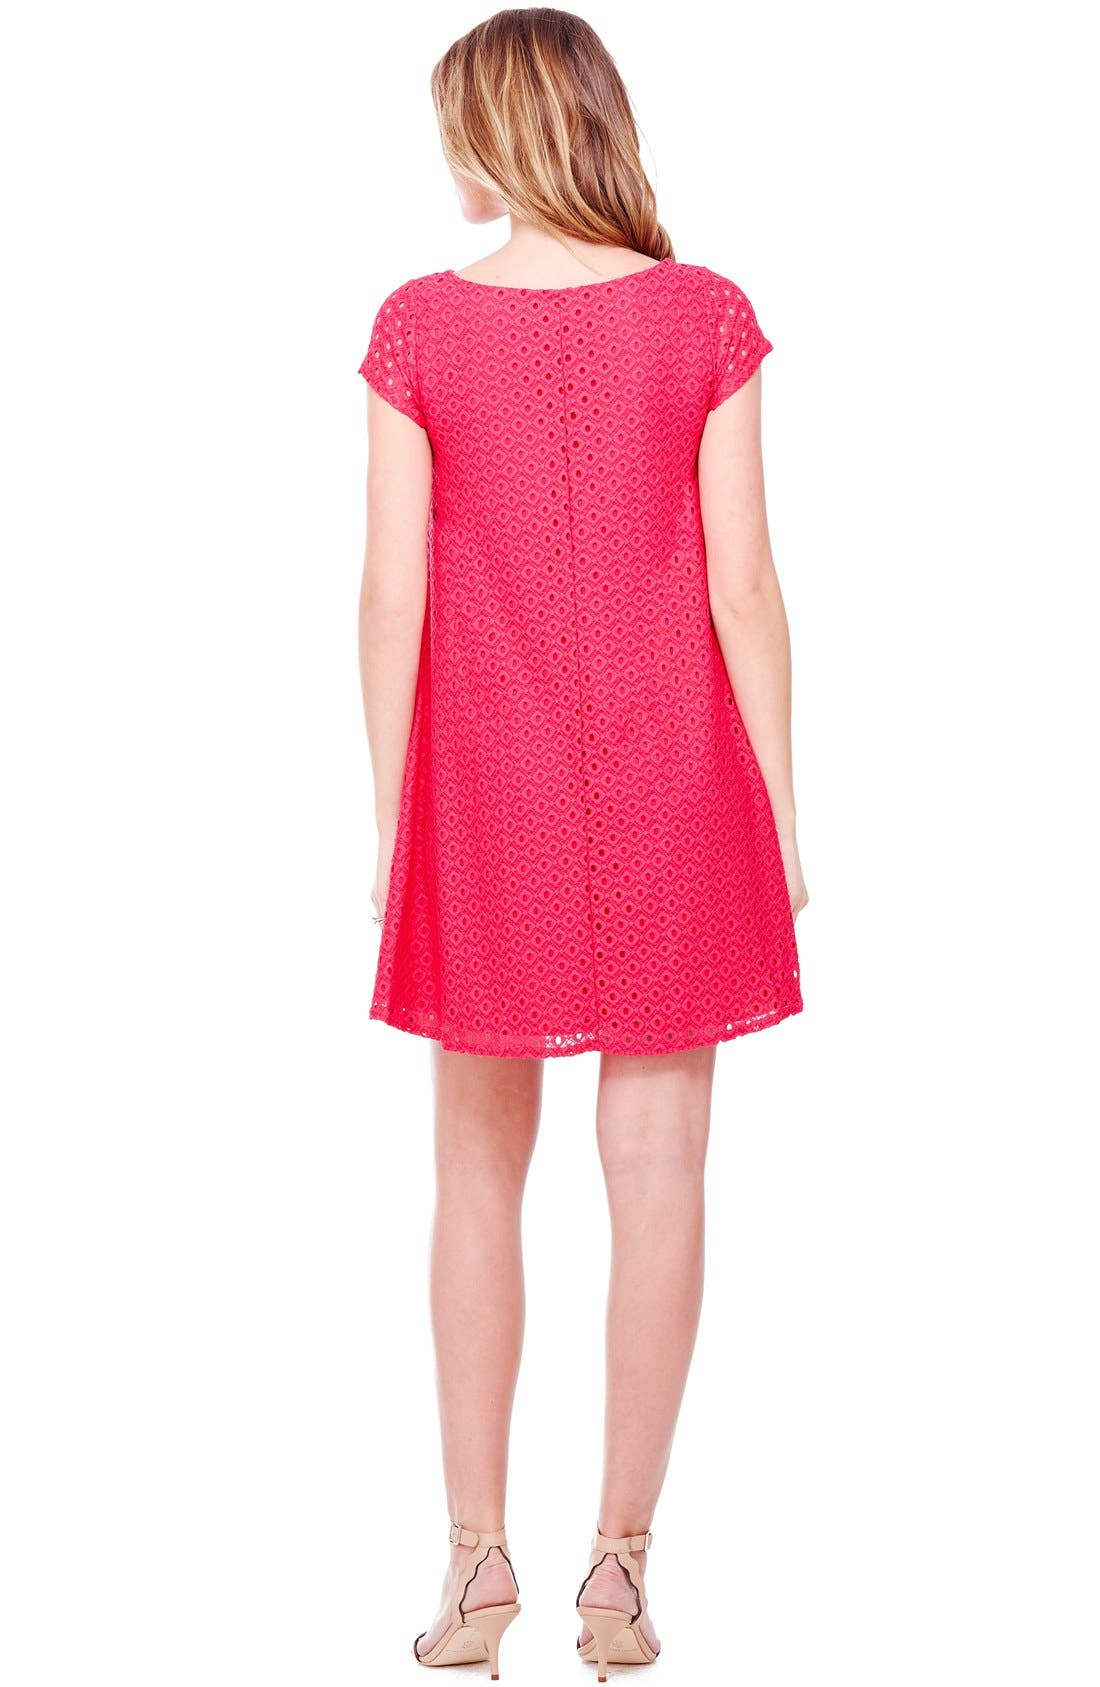 Ingrid & Isabel Lace Shift Maternity Dress,                             Alternate thumbnail 2, color,                             Berry